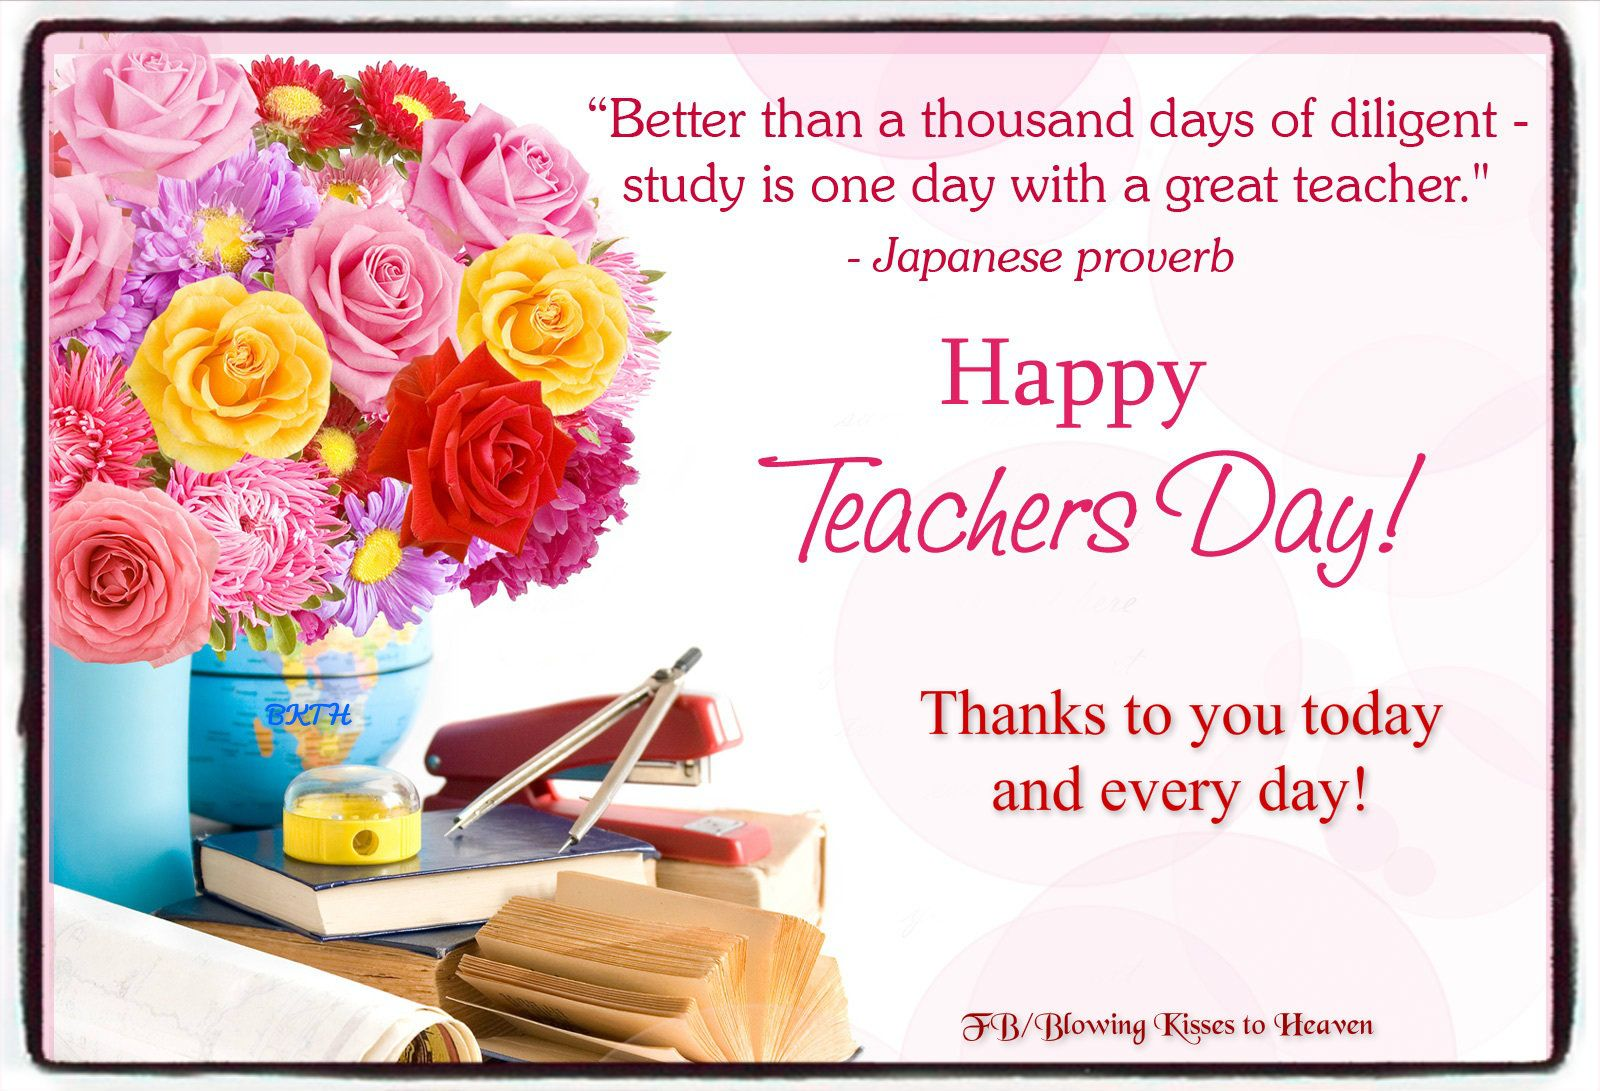 Teachers Day Happy Teachers Day Pinterest thumbnail